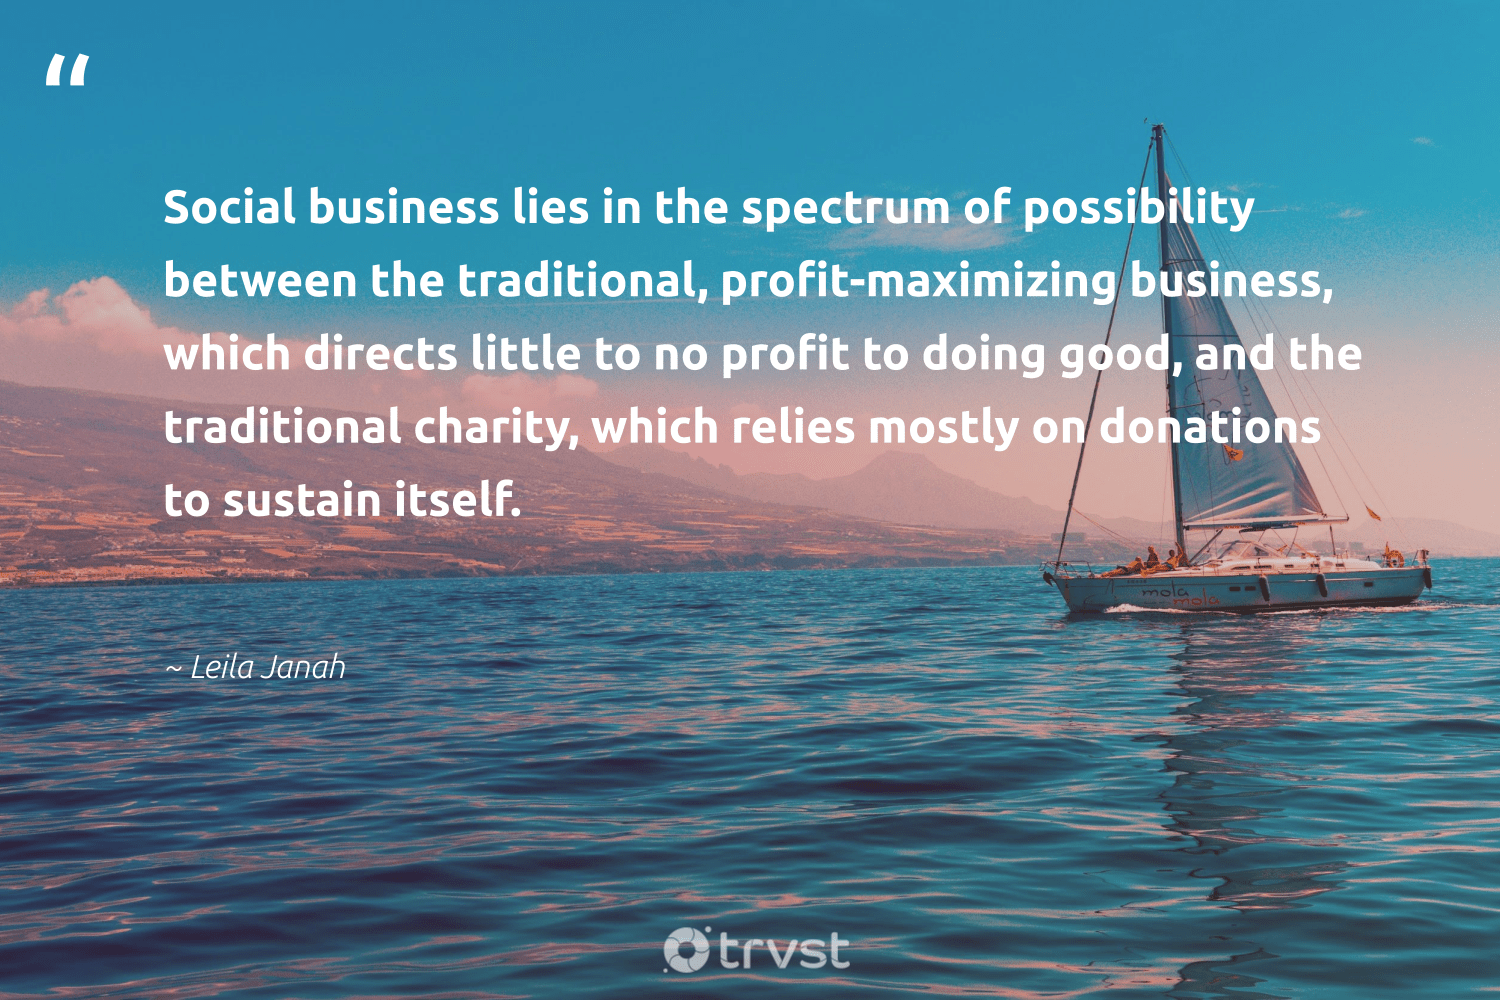 """""""Social business lies in the spectrum of possibility between the traditional, profit-maximizing business, which directs little to no profit to doing good, and the traditional charity, which relies mostly on donations to sustain itself.""""  - Leila Janah #trvst #quotes #socialbusiness #ethicalcompany #makeadifference #giveback #takeaction #businessethics #ethicalbusiness #weareallone #gogreen #socialentrepreneur"""